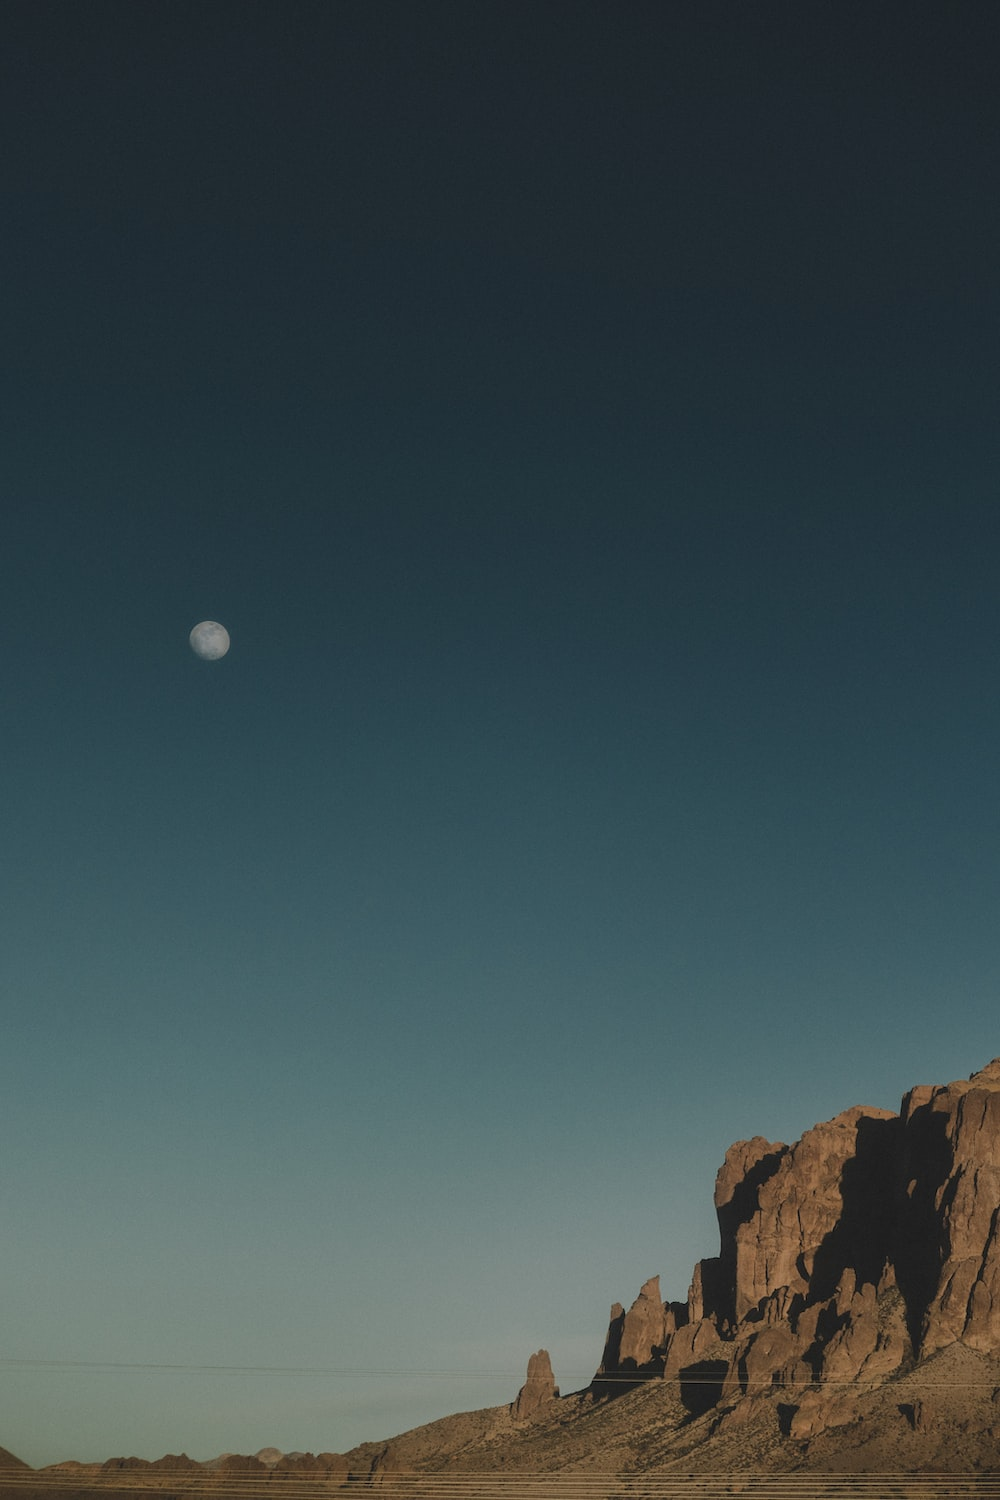 rock formation under clear skies and moon